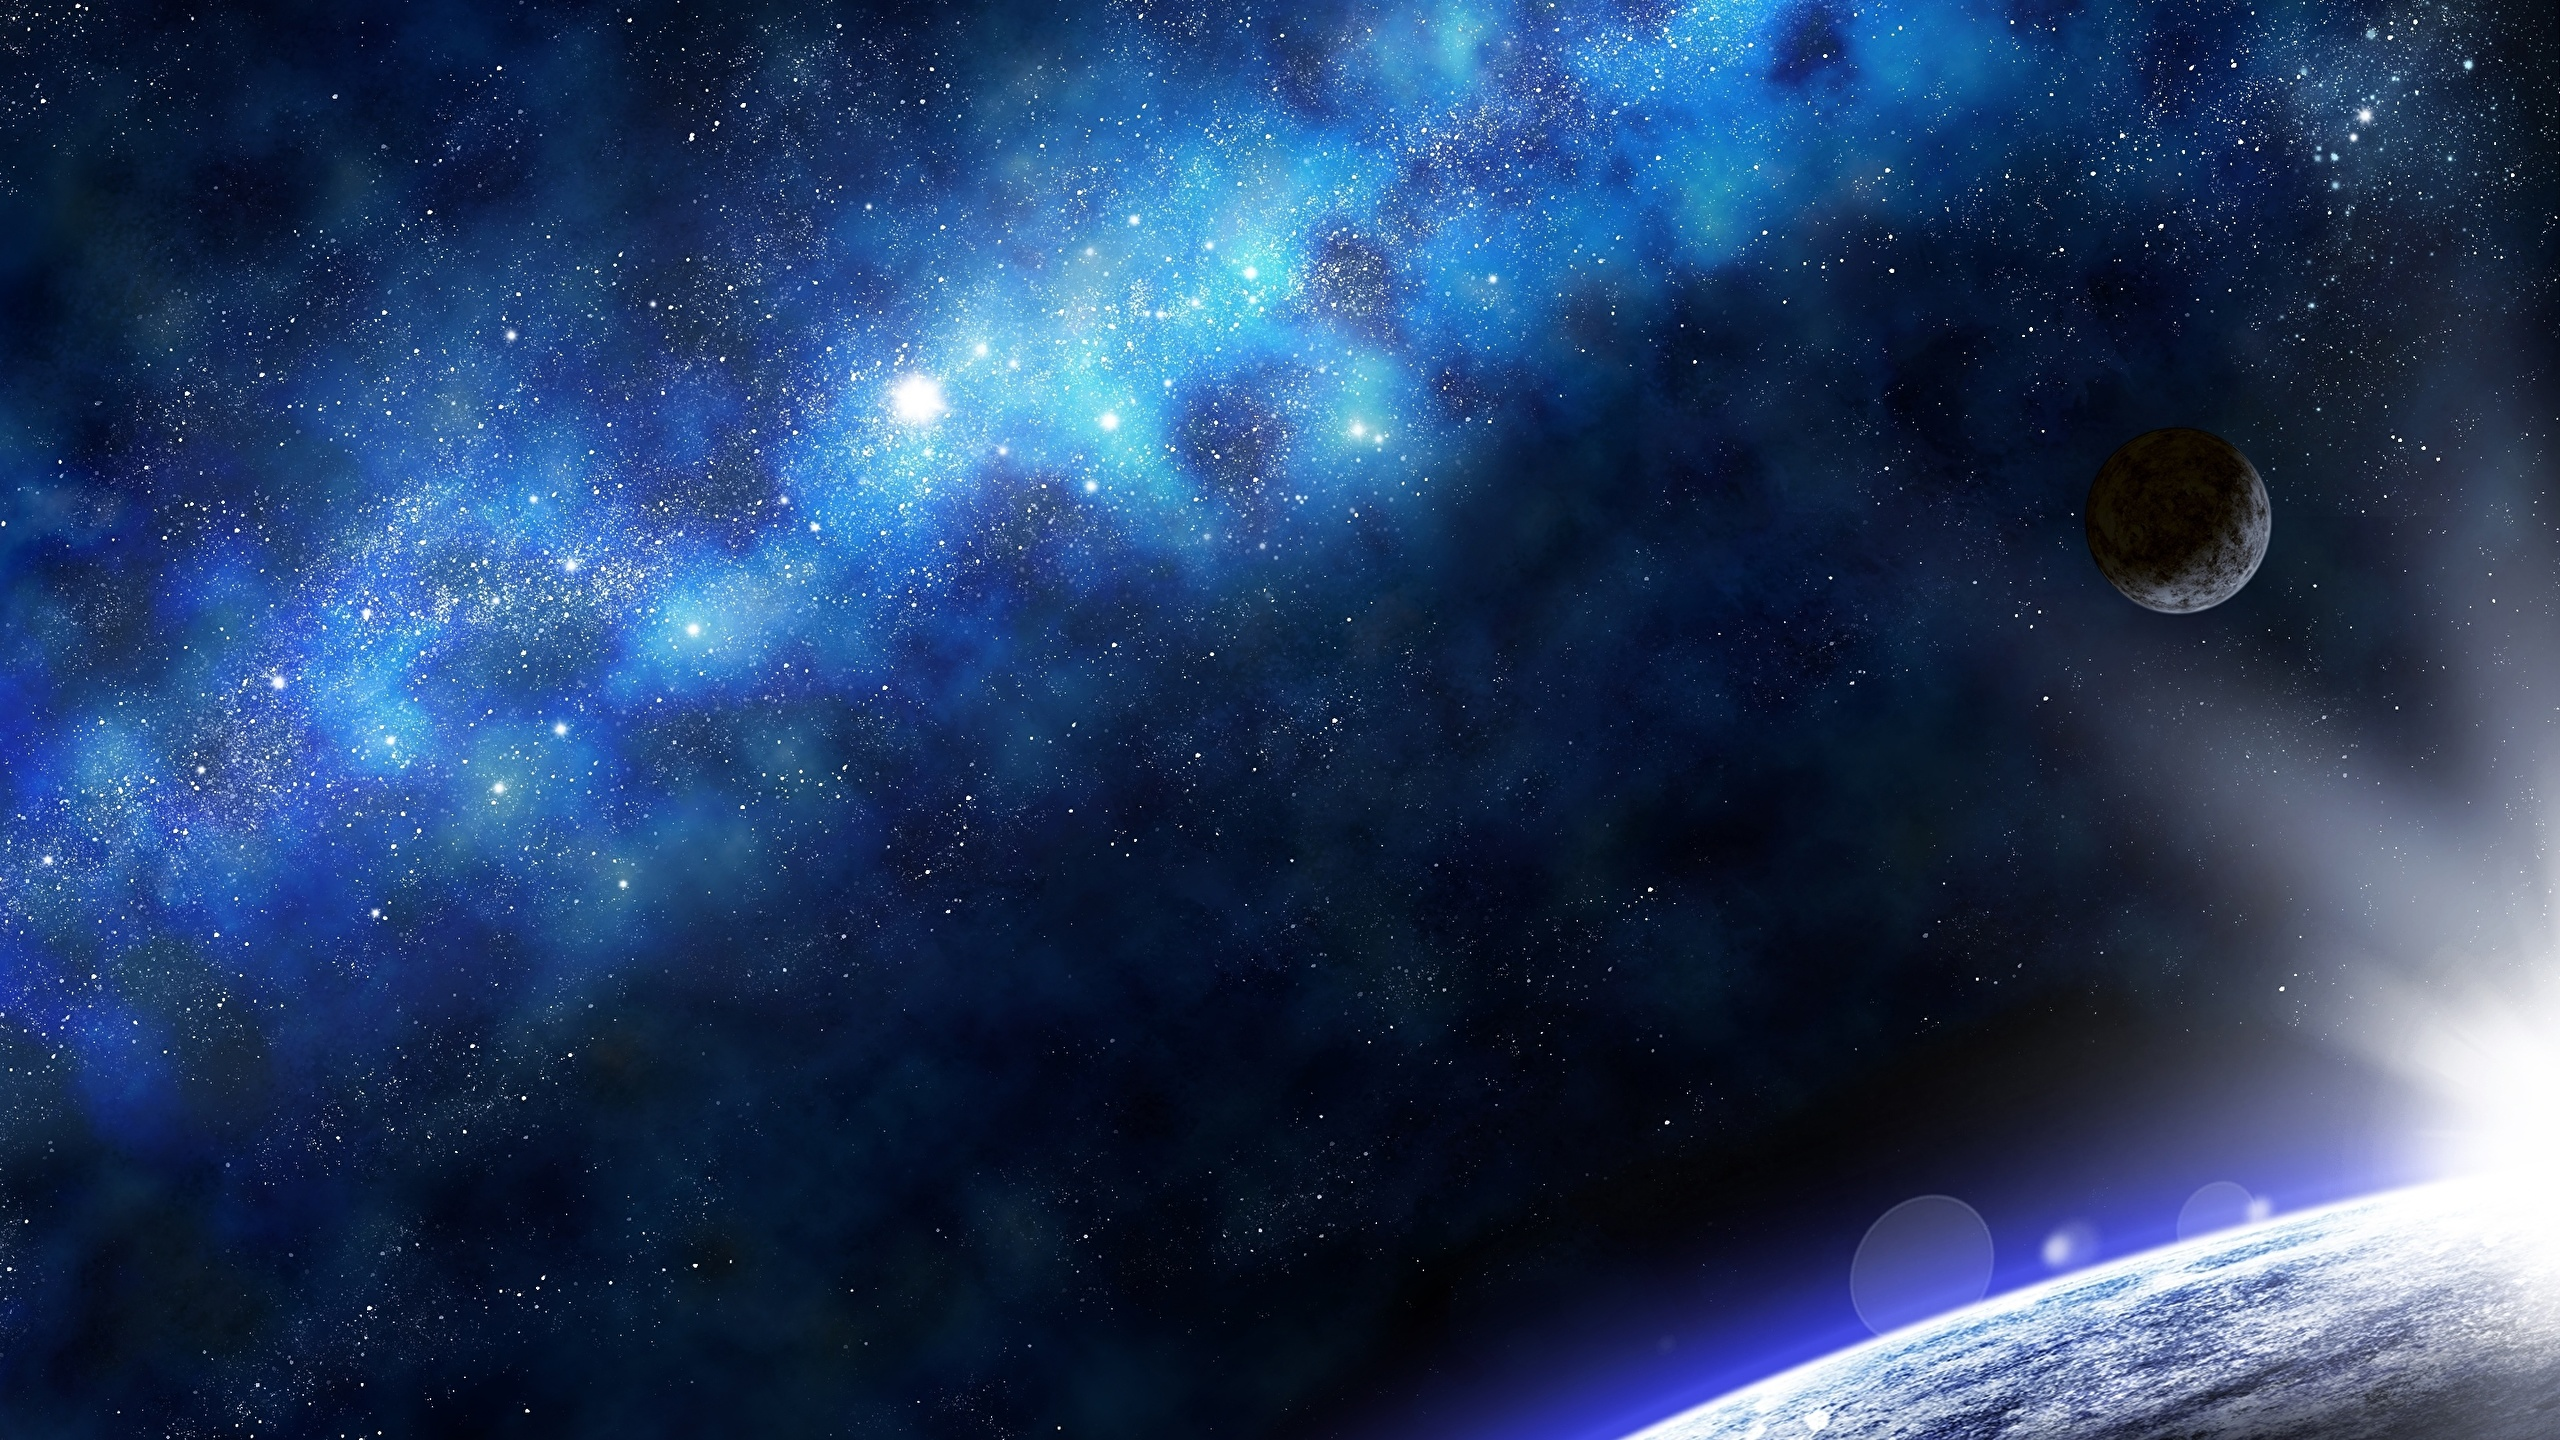 Image planets nebulae in space space 2560x1440 - Space 2560 x 1440 ...